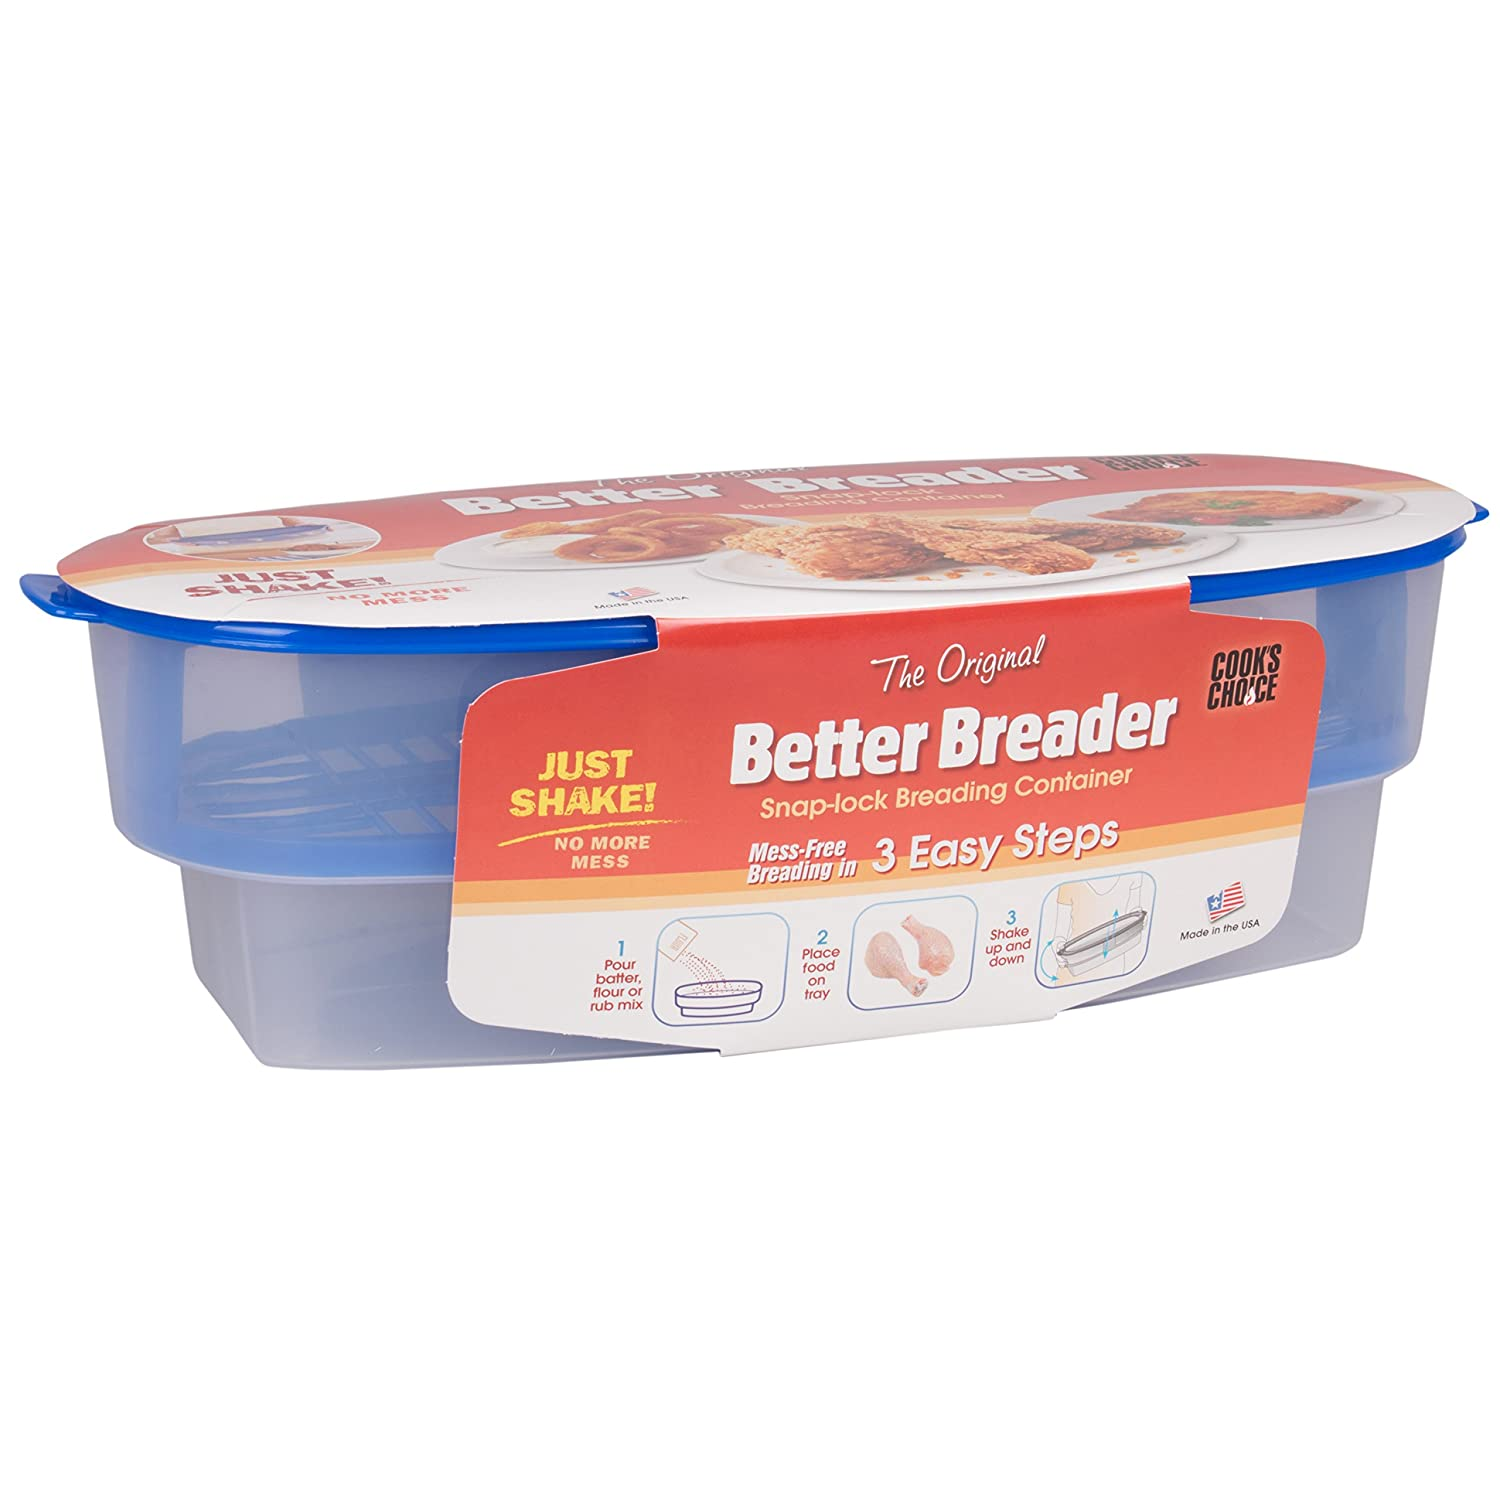 Cook's Choice Original Better Breader Batter Bowl- All-in-One Mess Free Breading Station Tray for at Home or On-the-Go